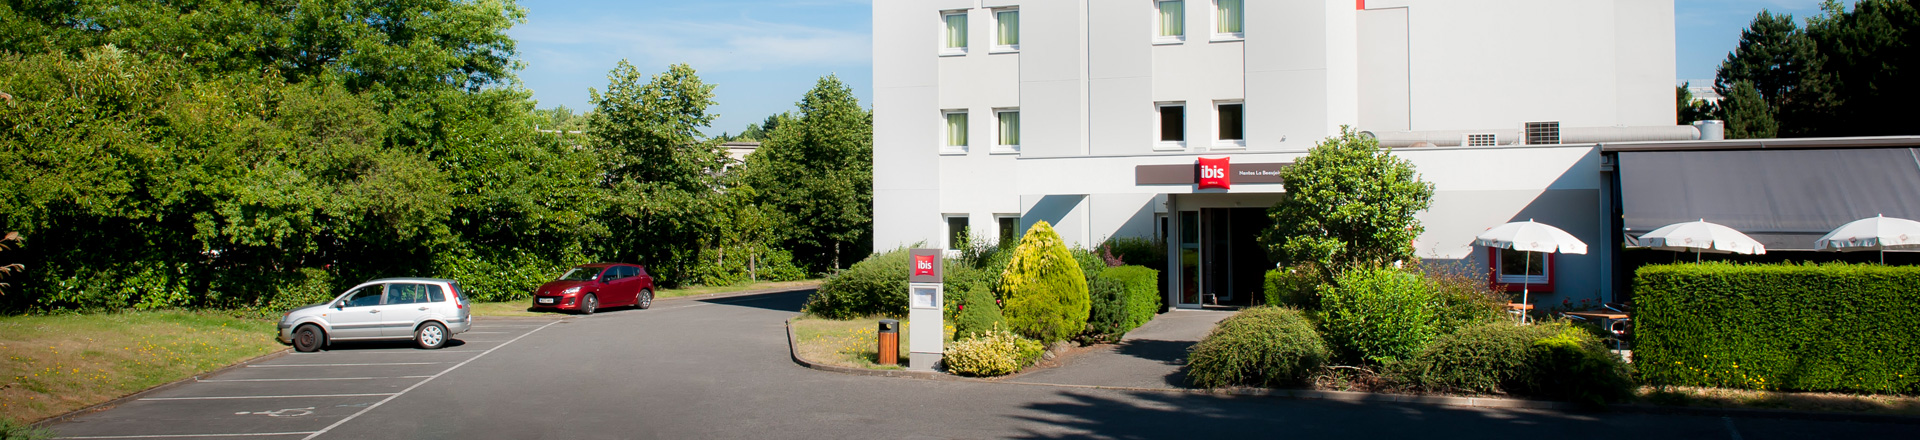 Hotel parking La Beaujoire Nantes